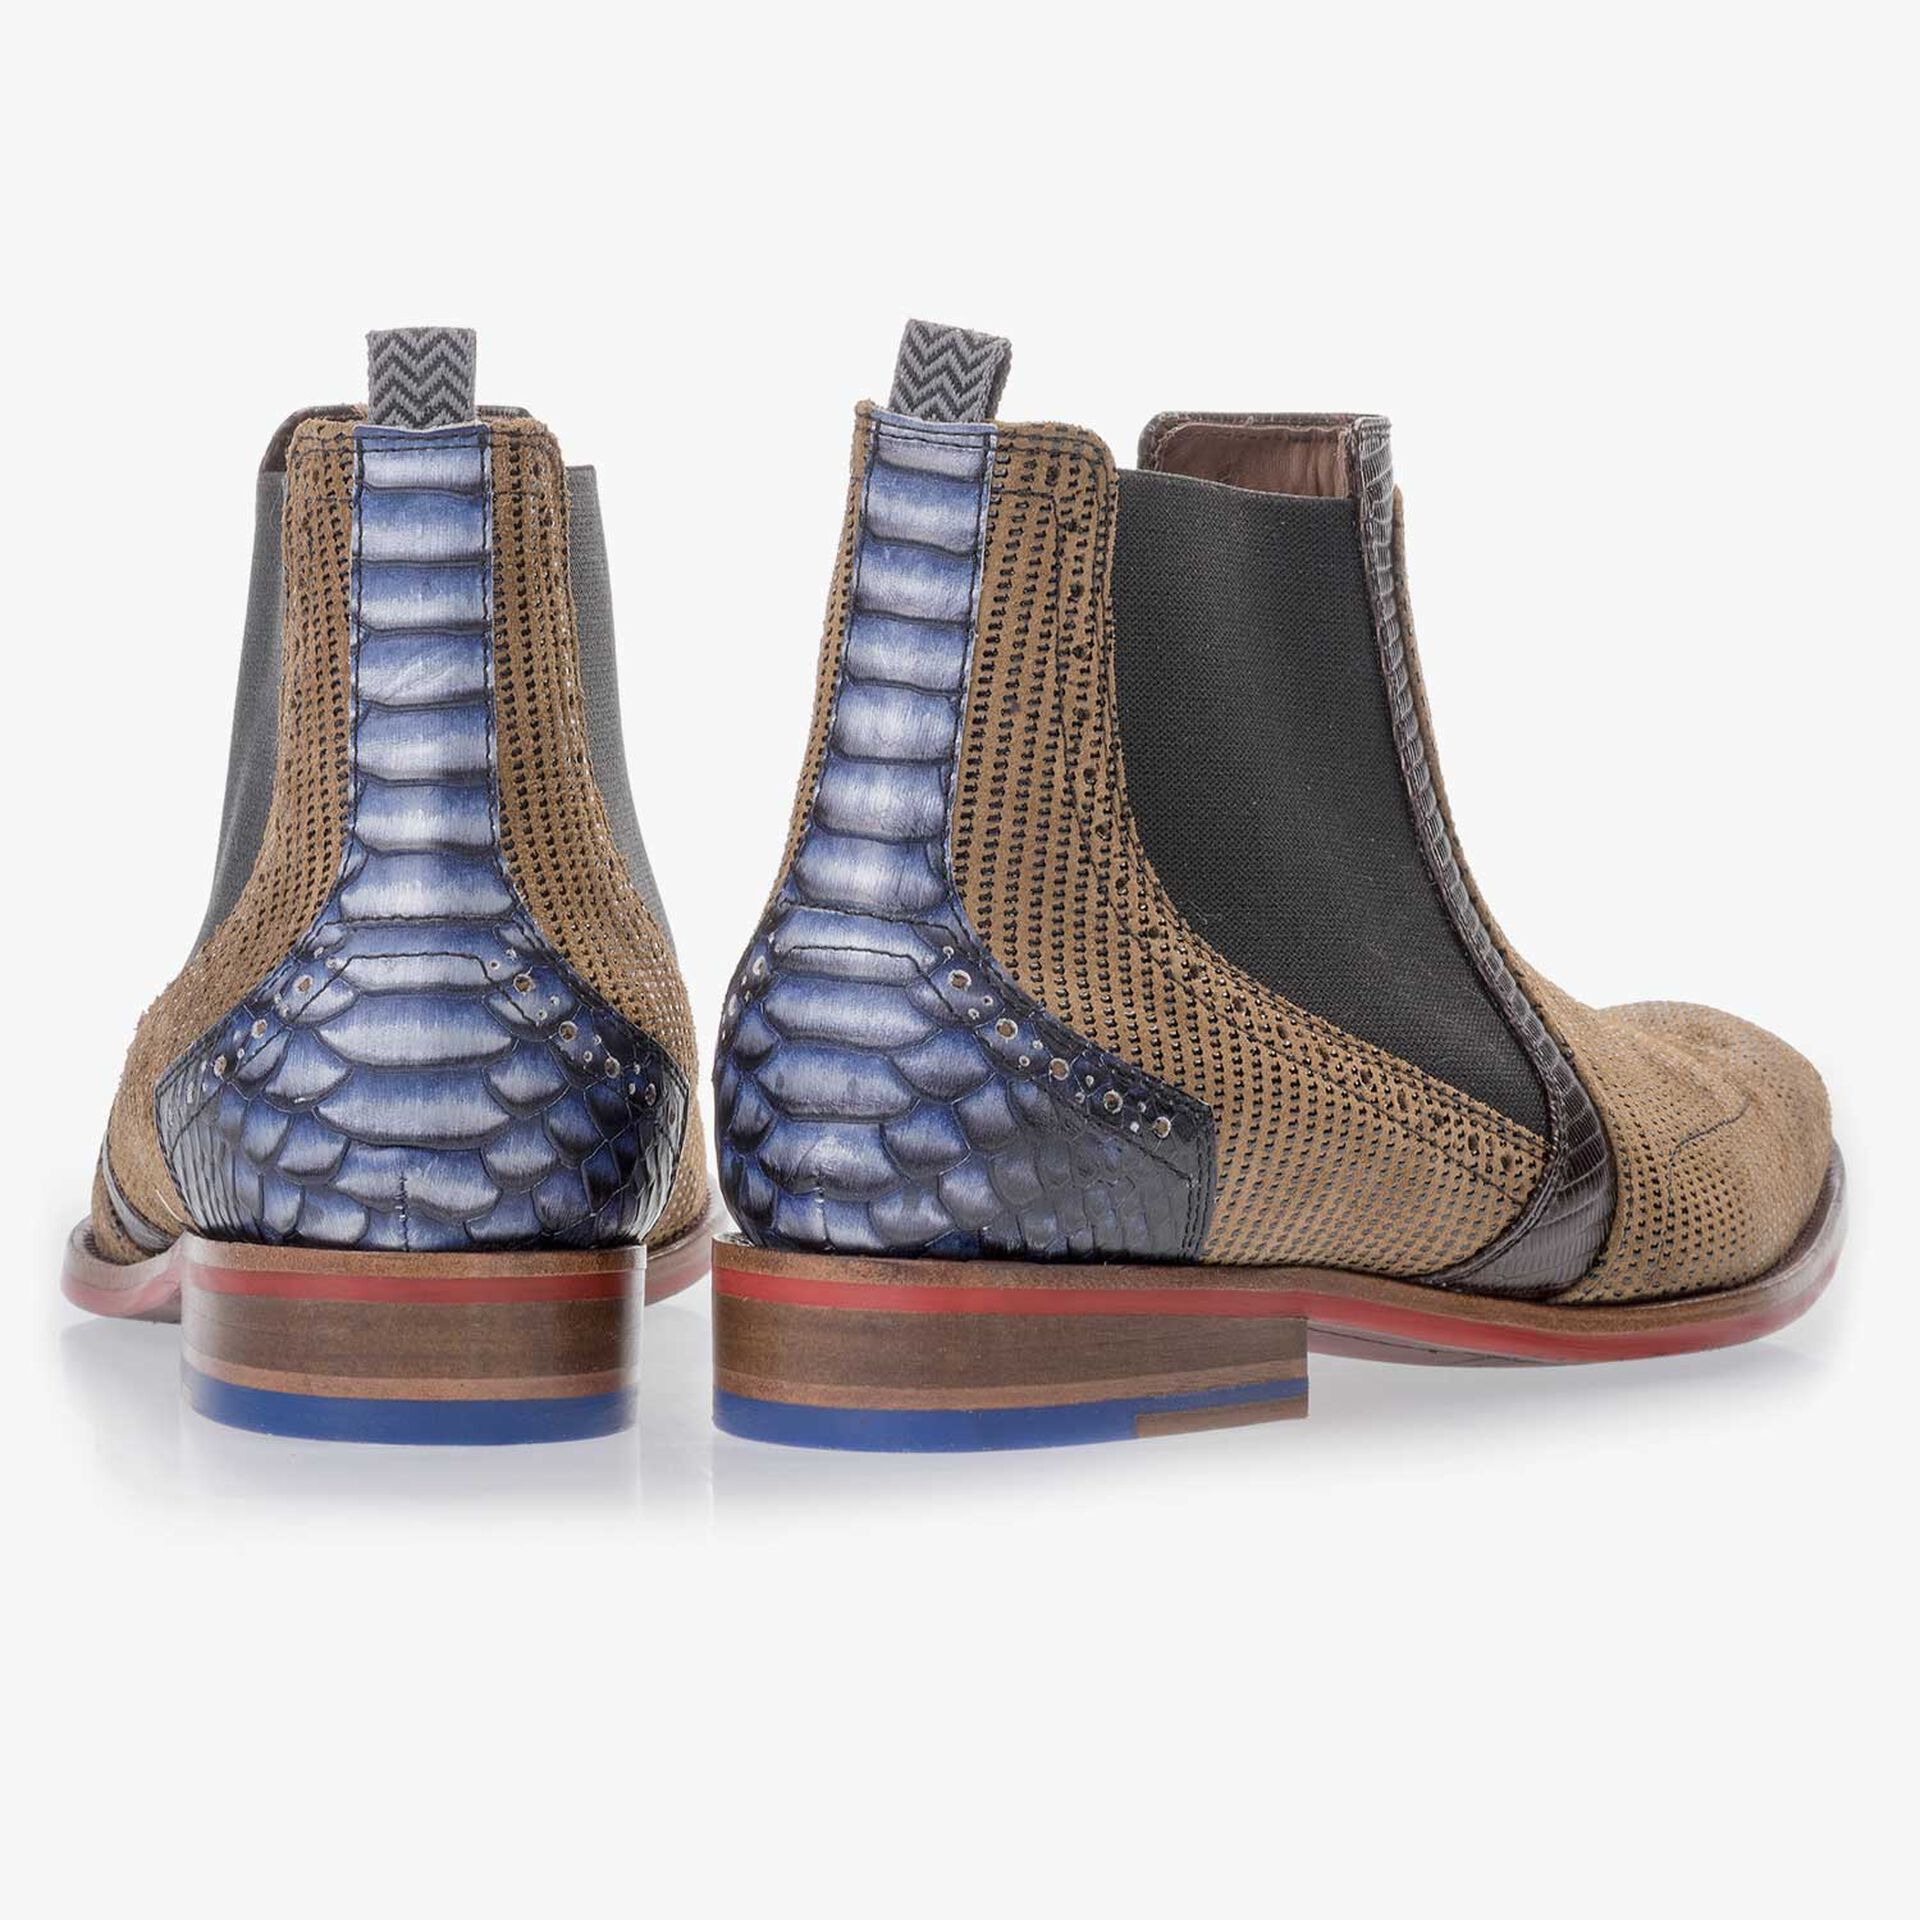 Camel-coloured Chelsea boot made of suede leather